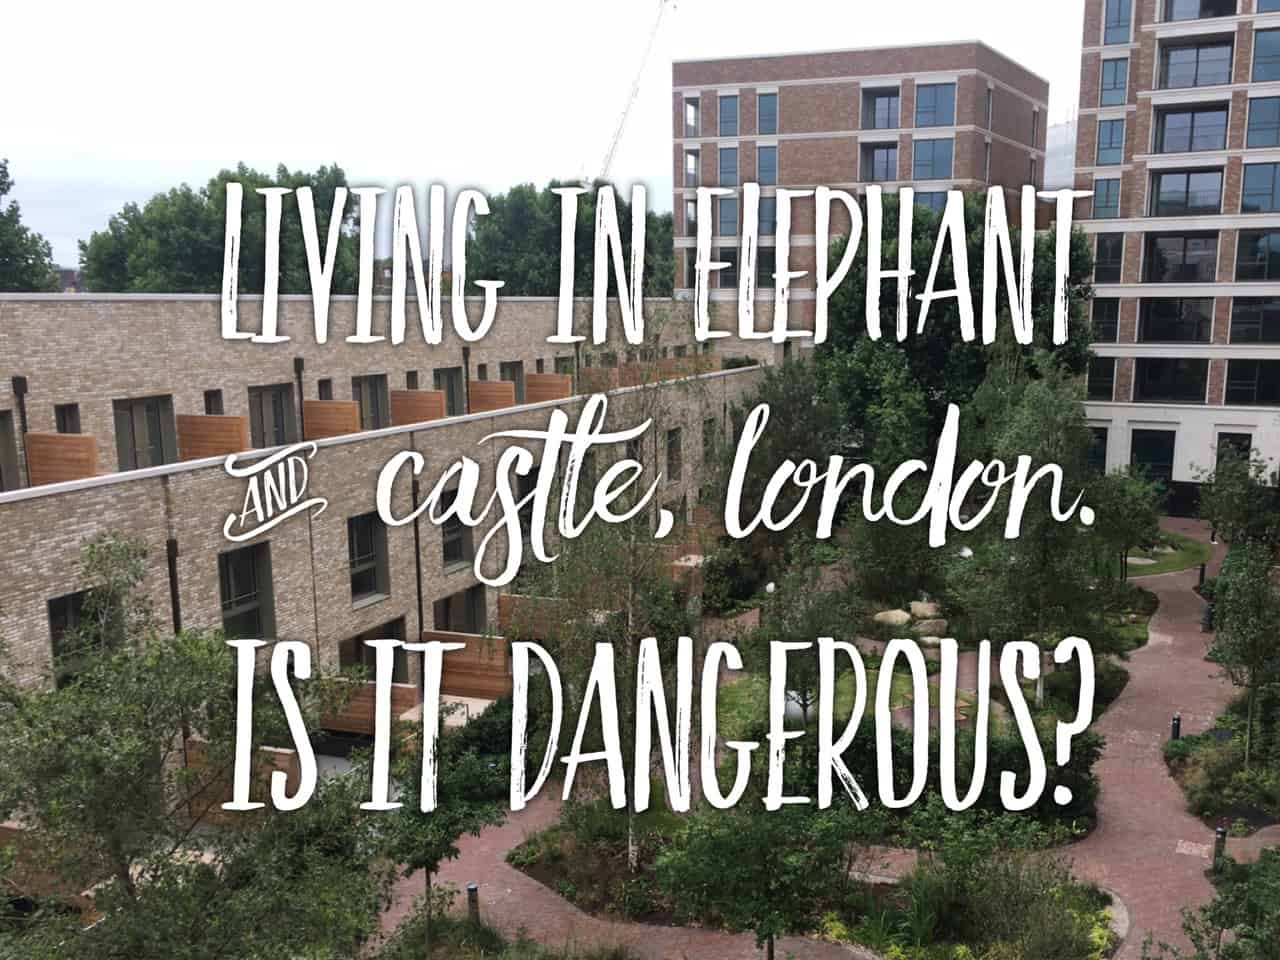 Living in Elephant and Castle, London - is Elephant and Castle dangerous?